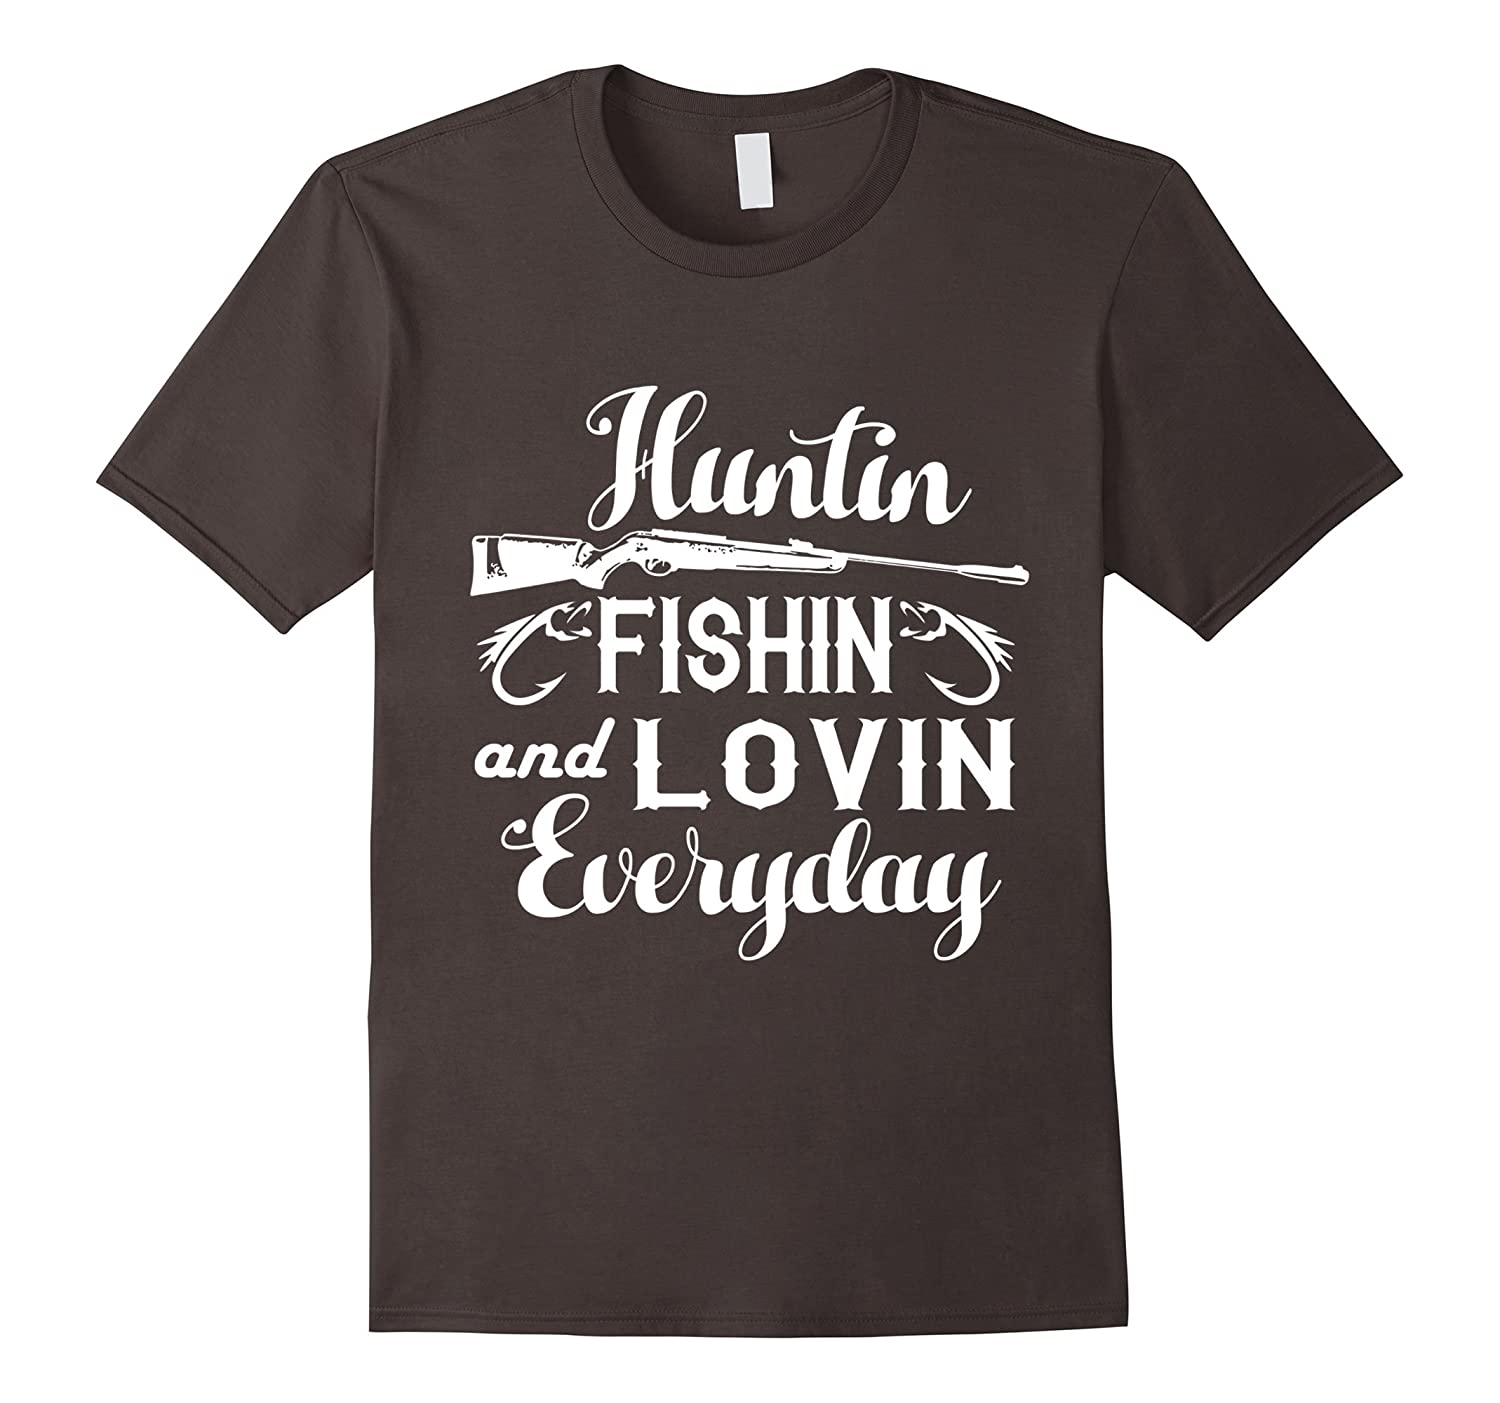 love everyday tshirt hunting fishing loving everyday